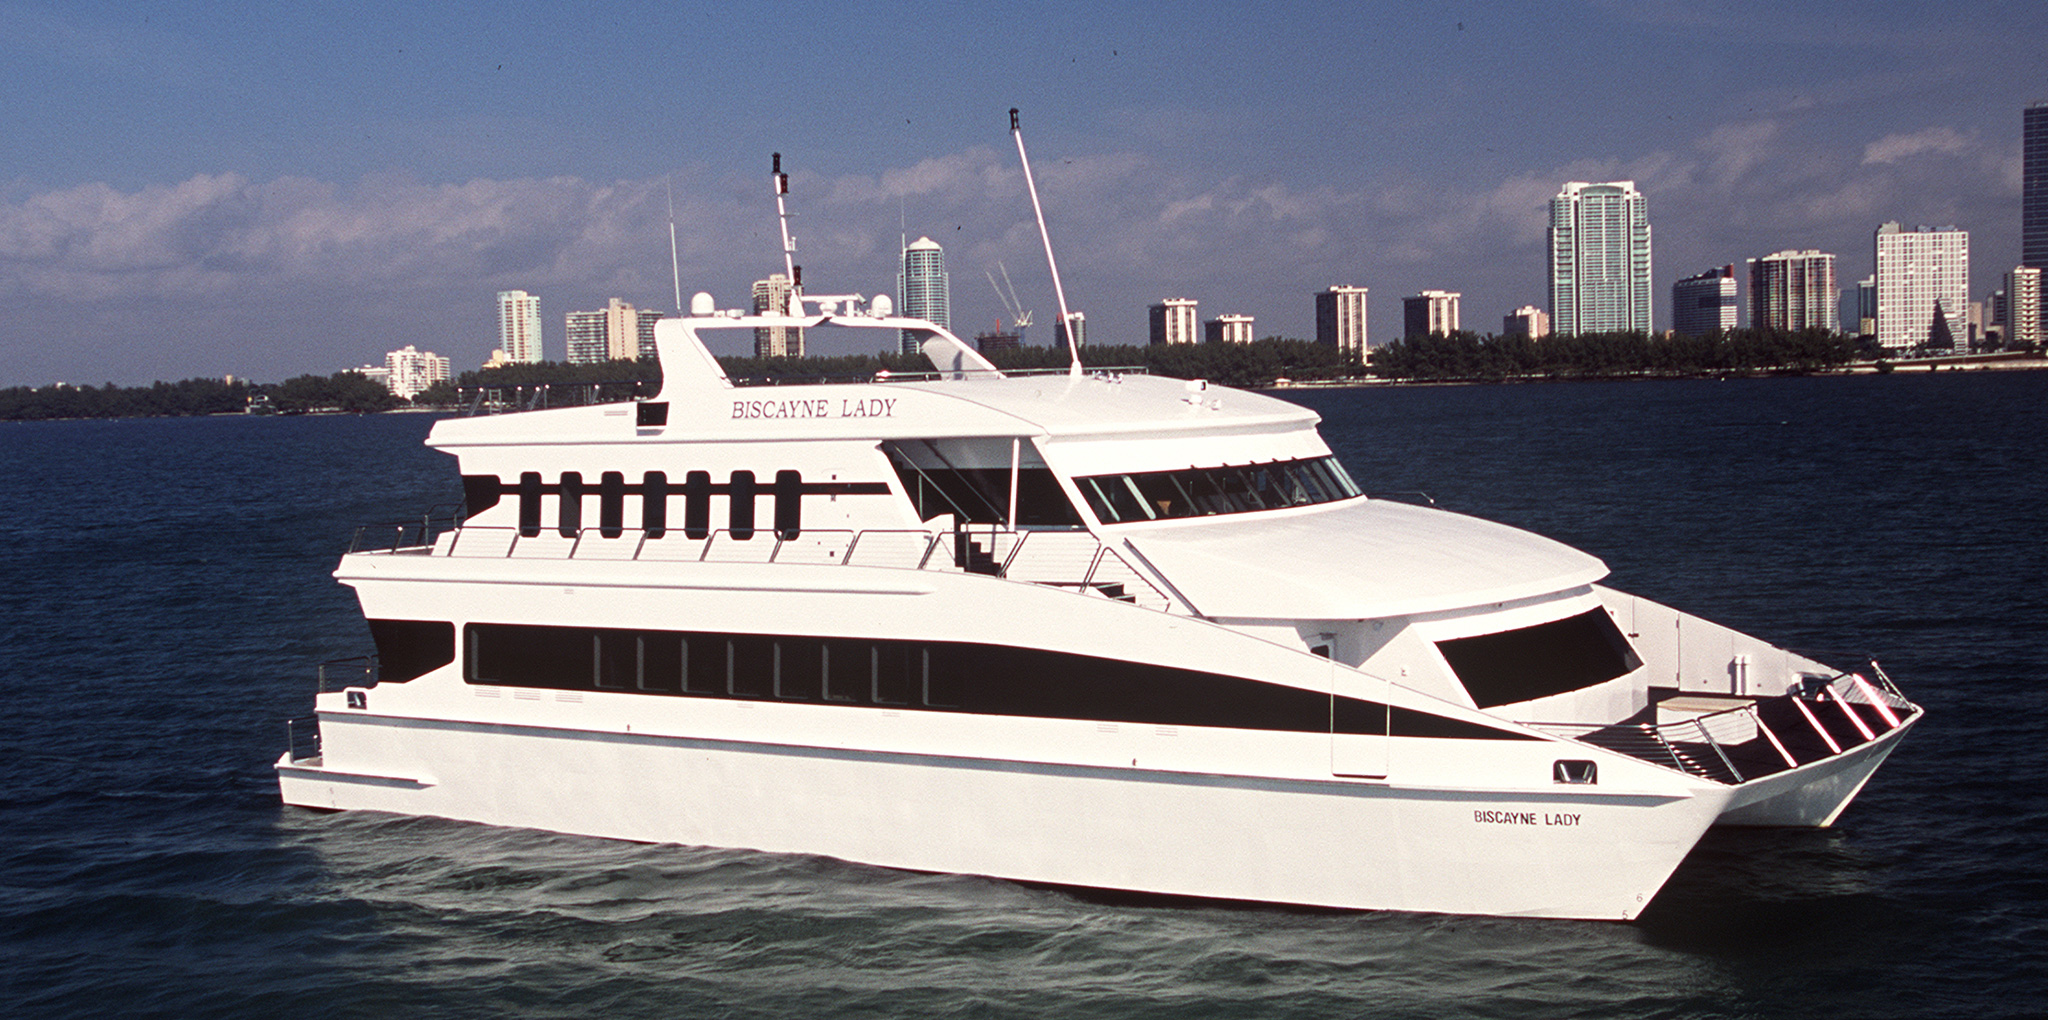 Biscayne Lady Image